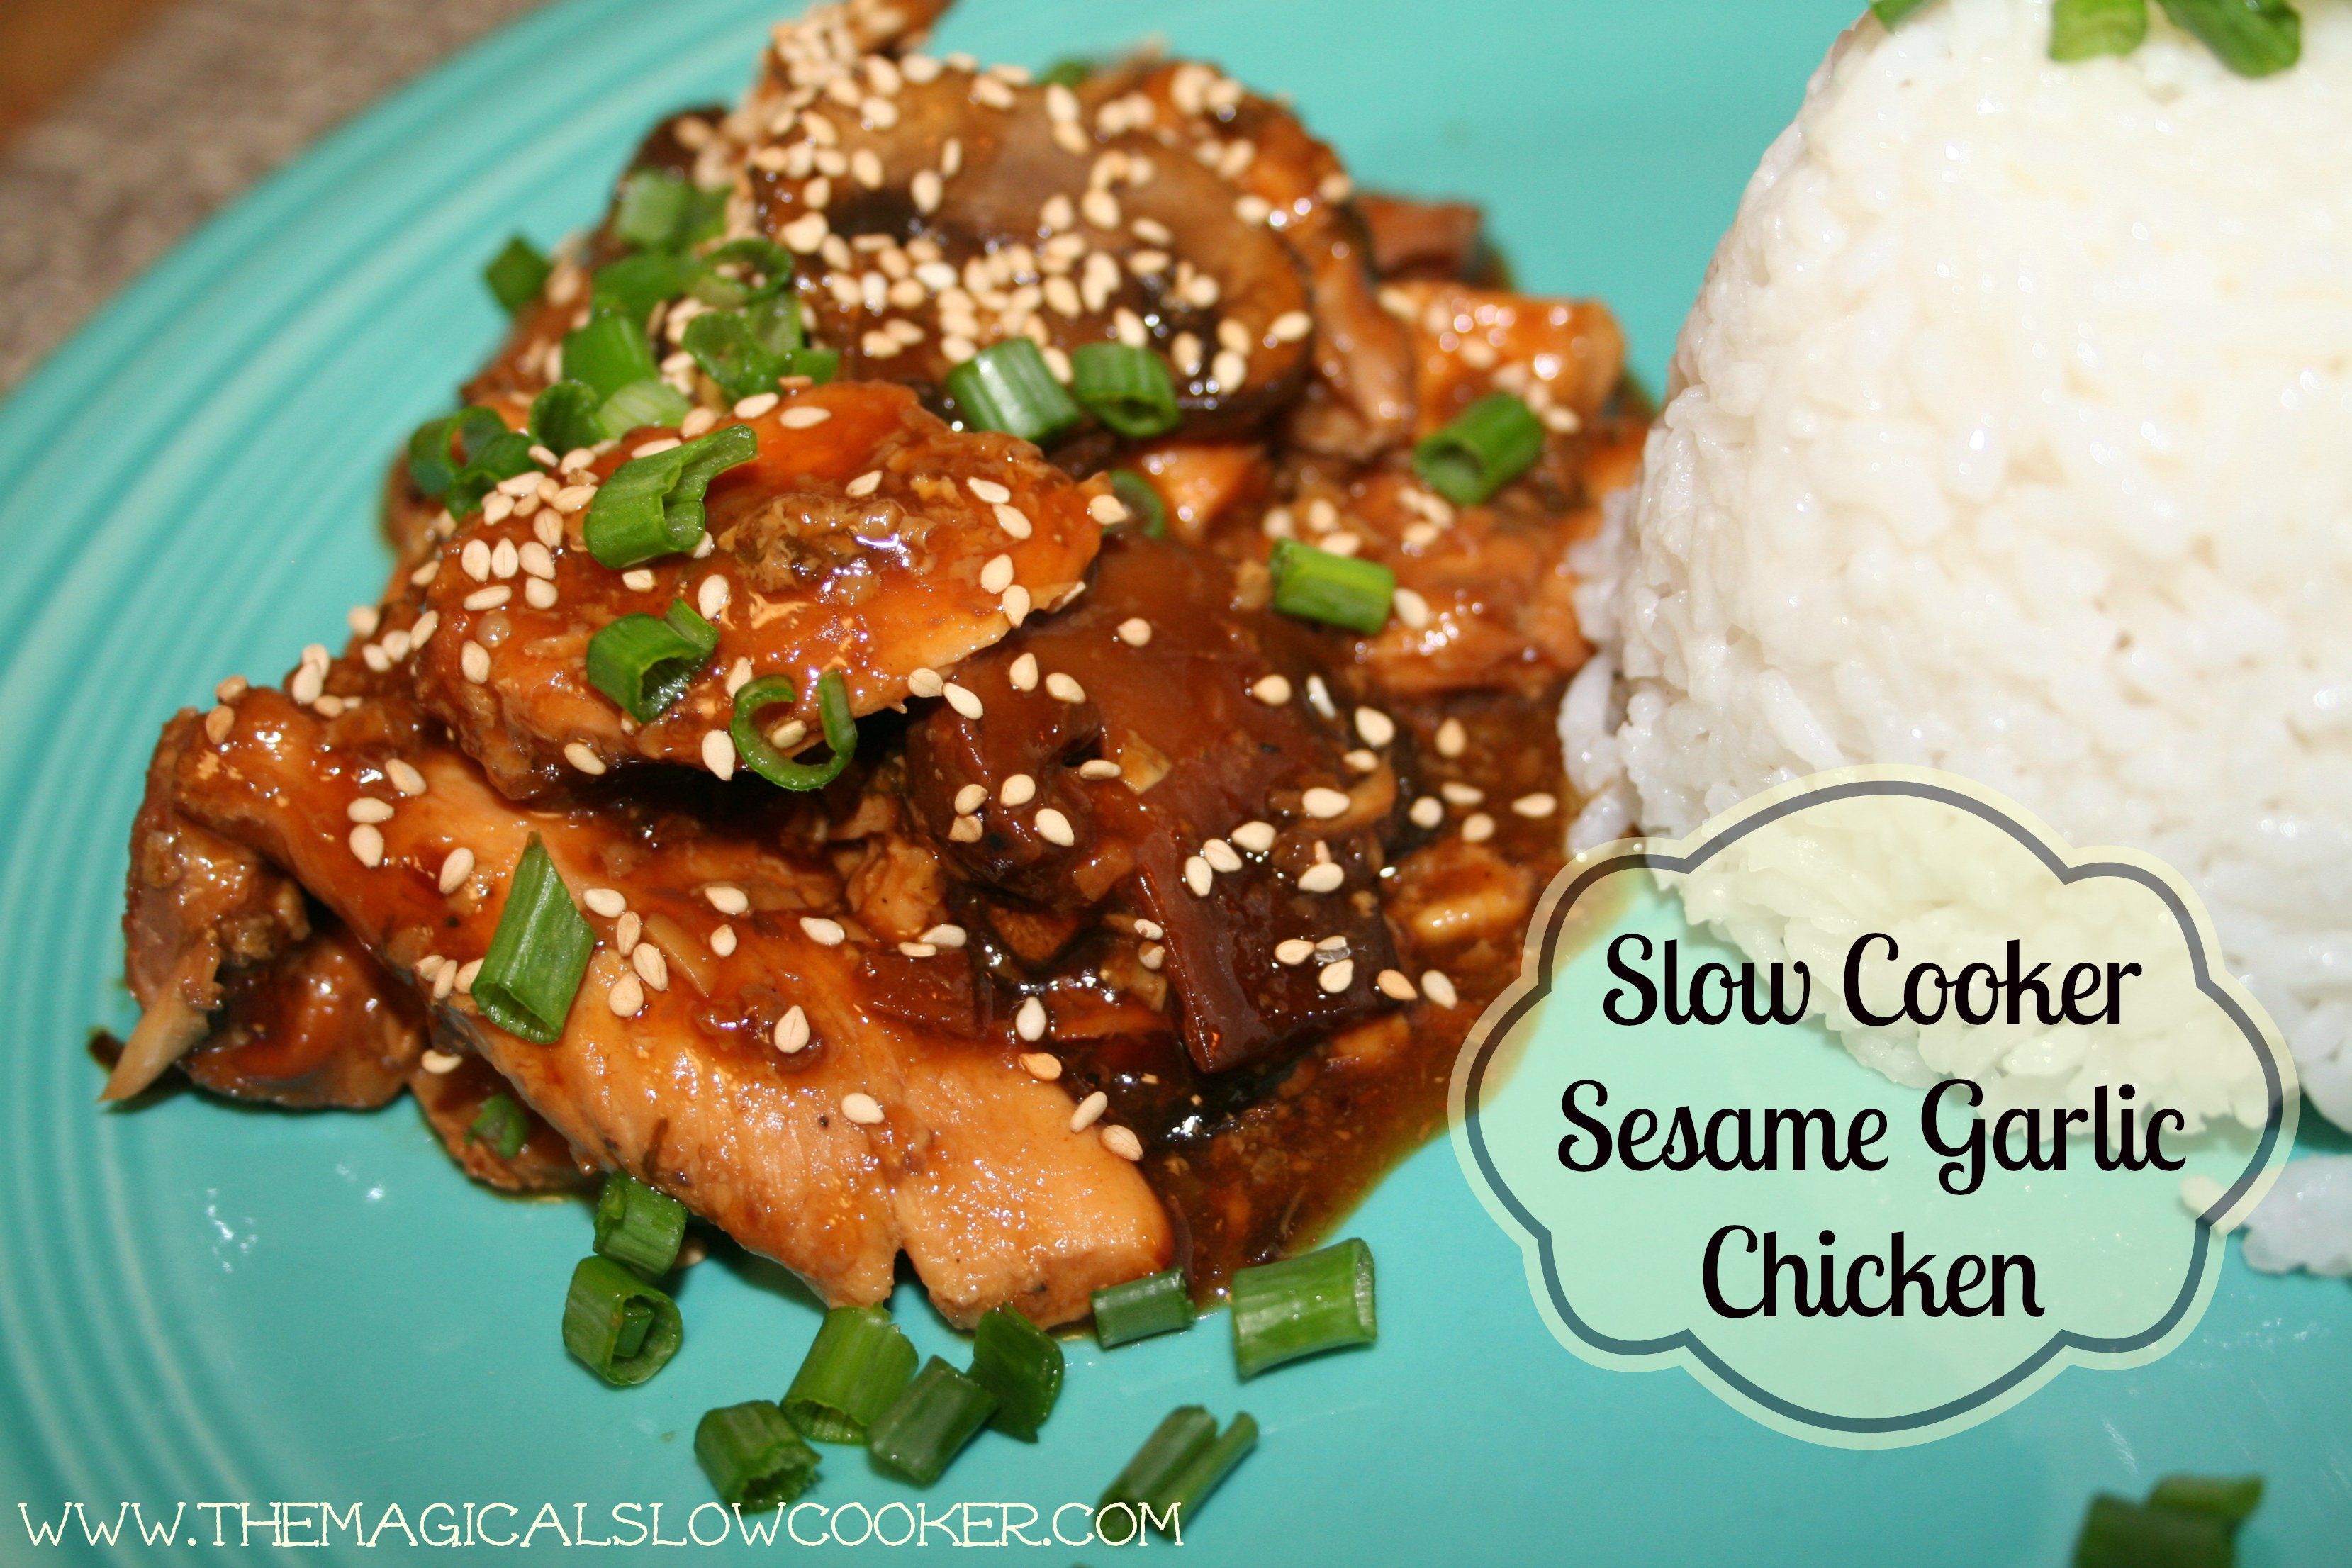 Slow Cooker Sesame Garlic Chicken - The Magical Slow Cooker